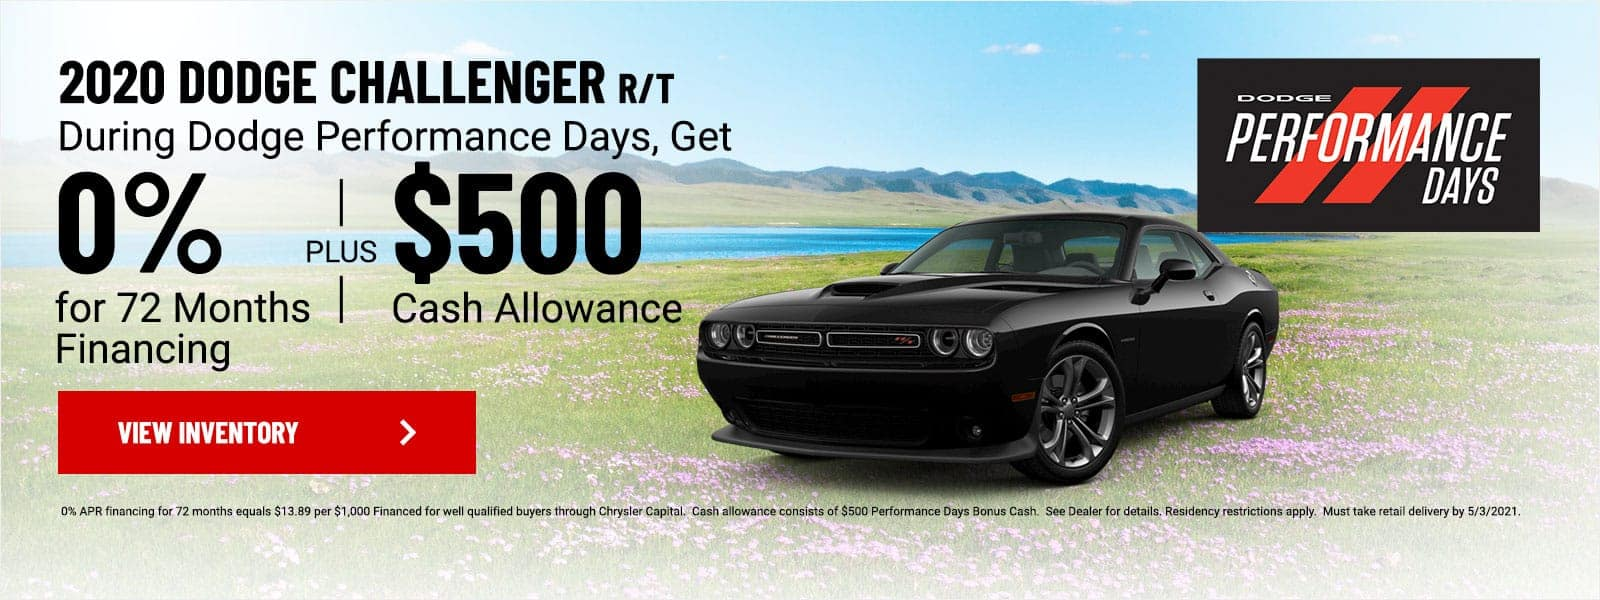 [All Markets] 20-dodge-Challenger